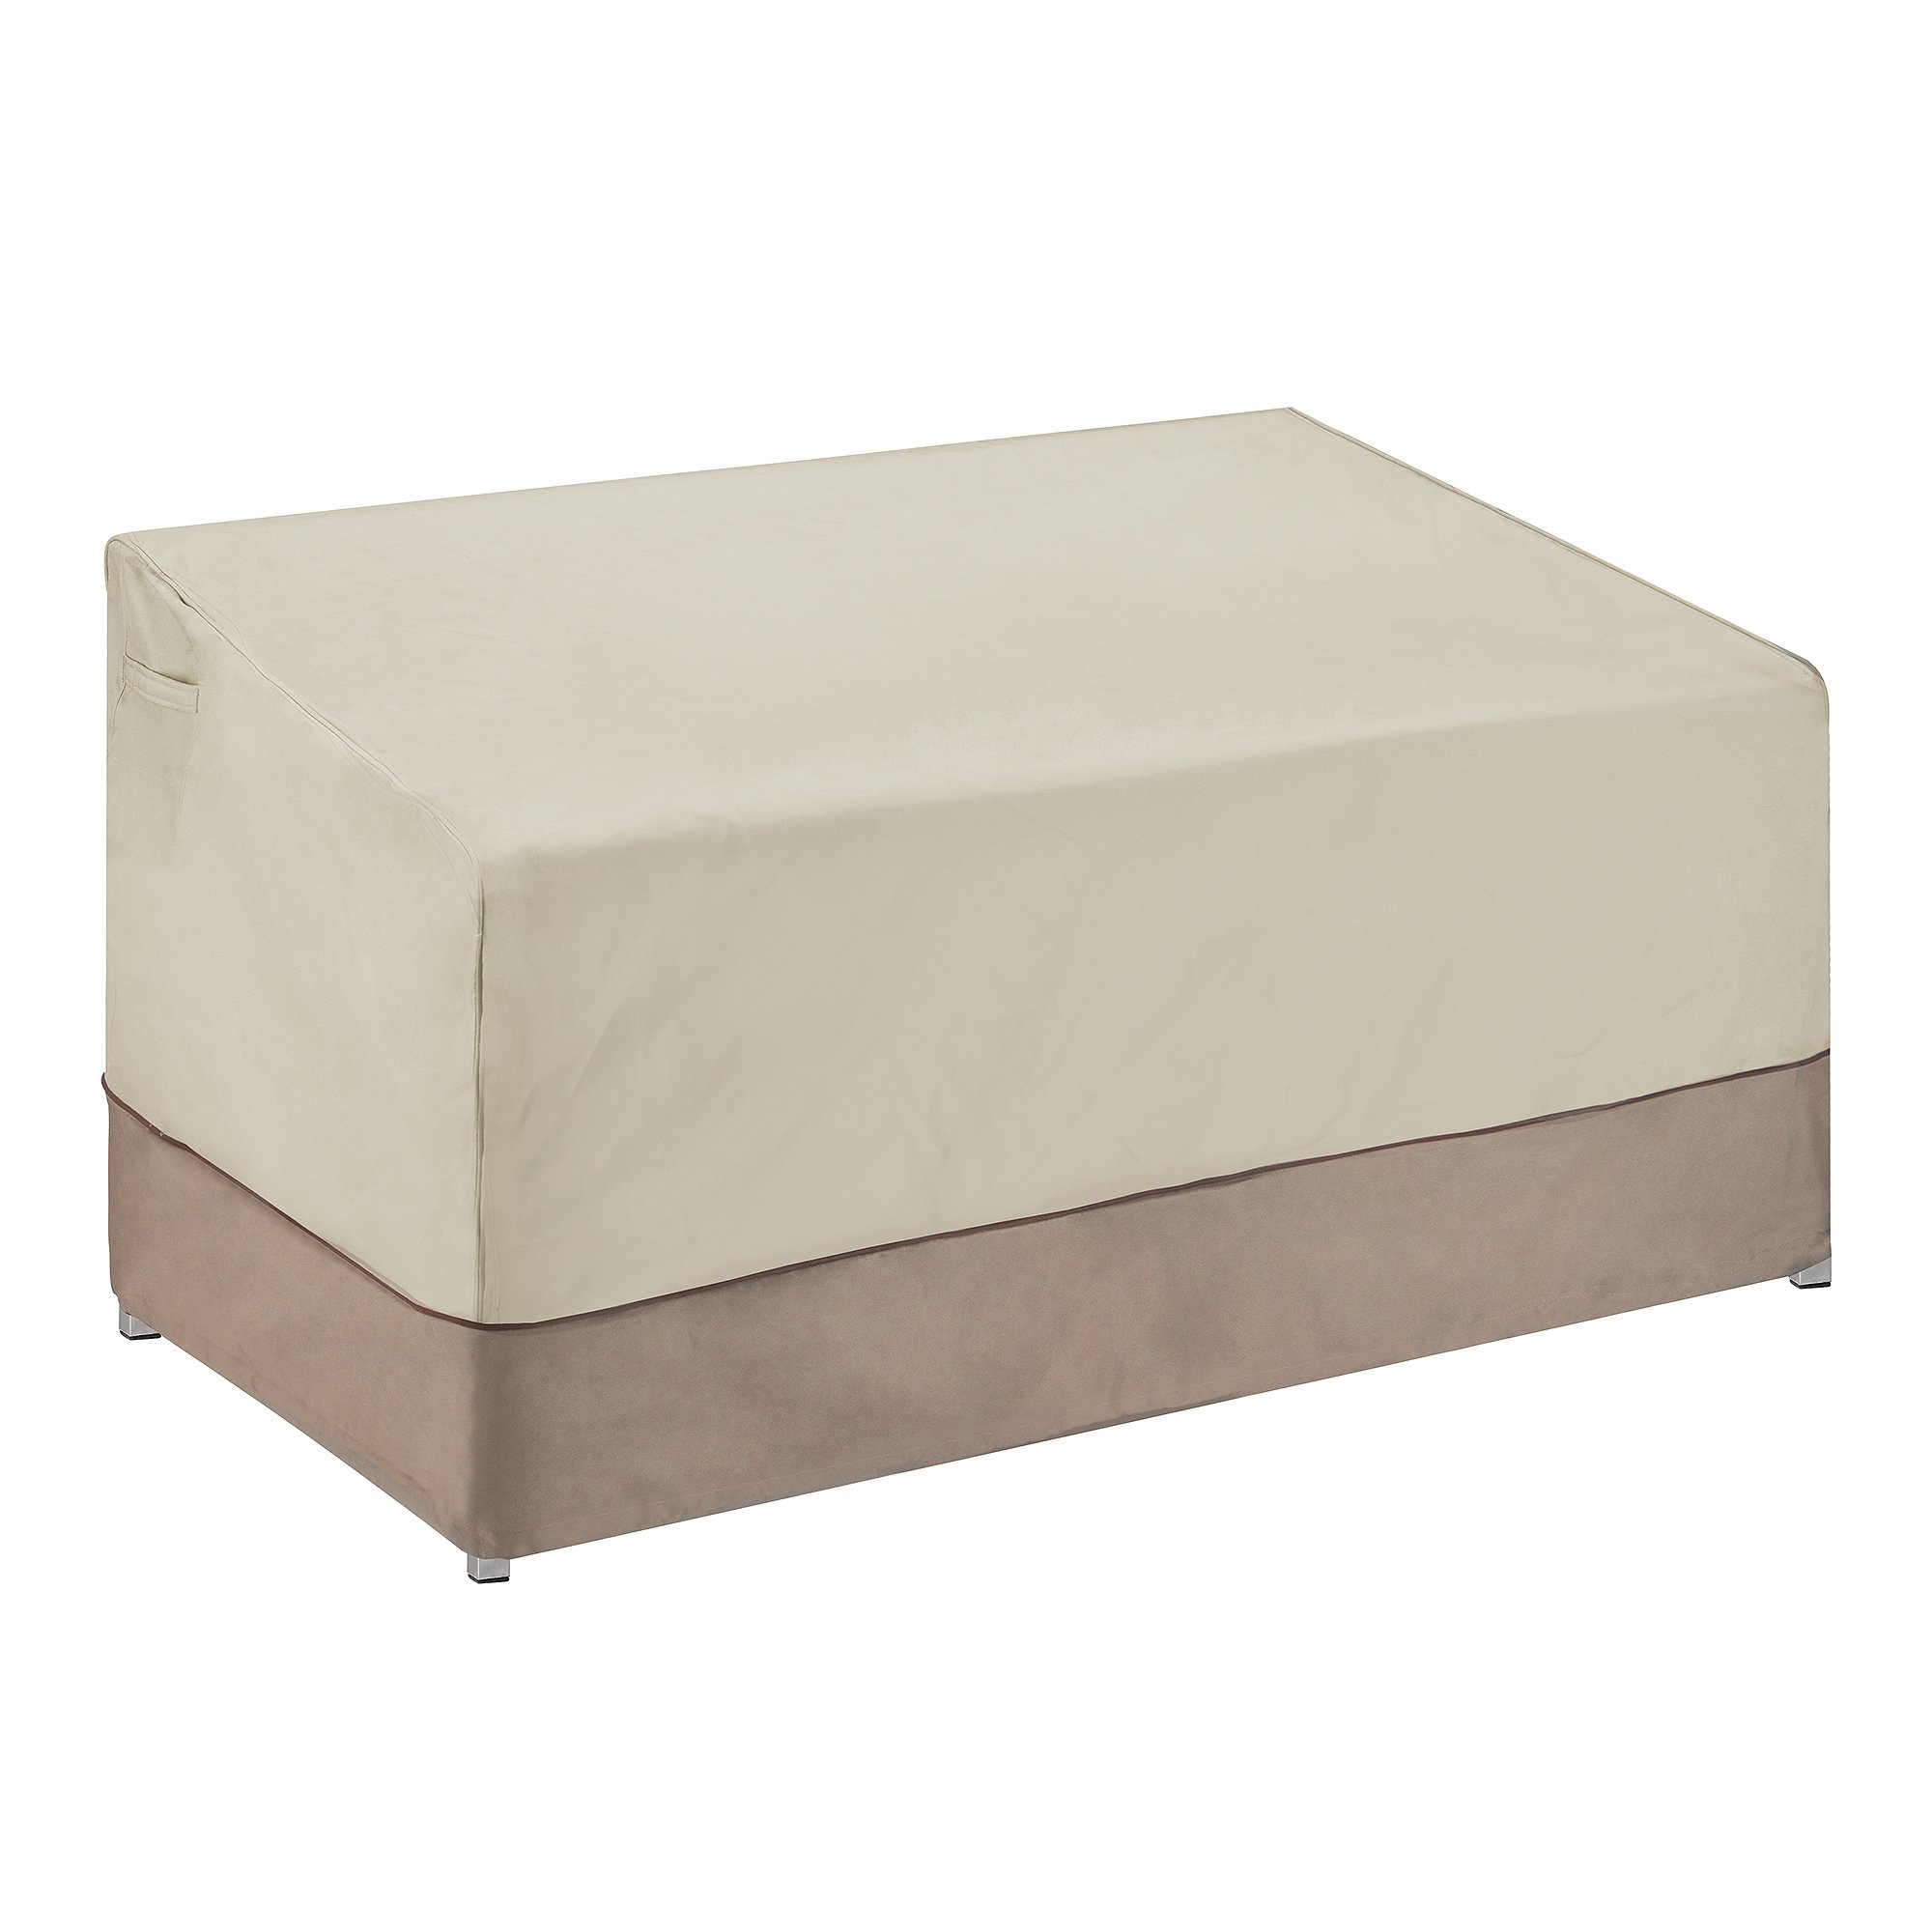 Villacera 83-DT5795 Patio Love Seat Cover, Beige and Brown, Sm